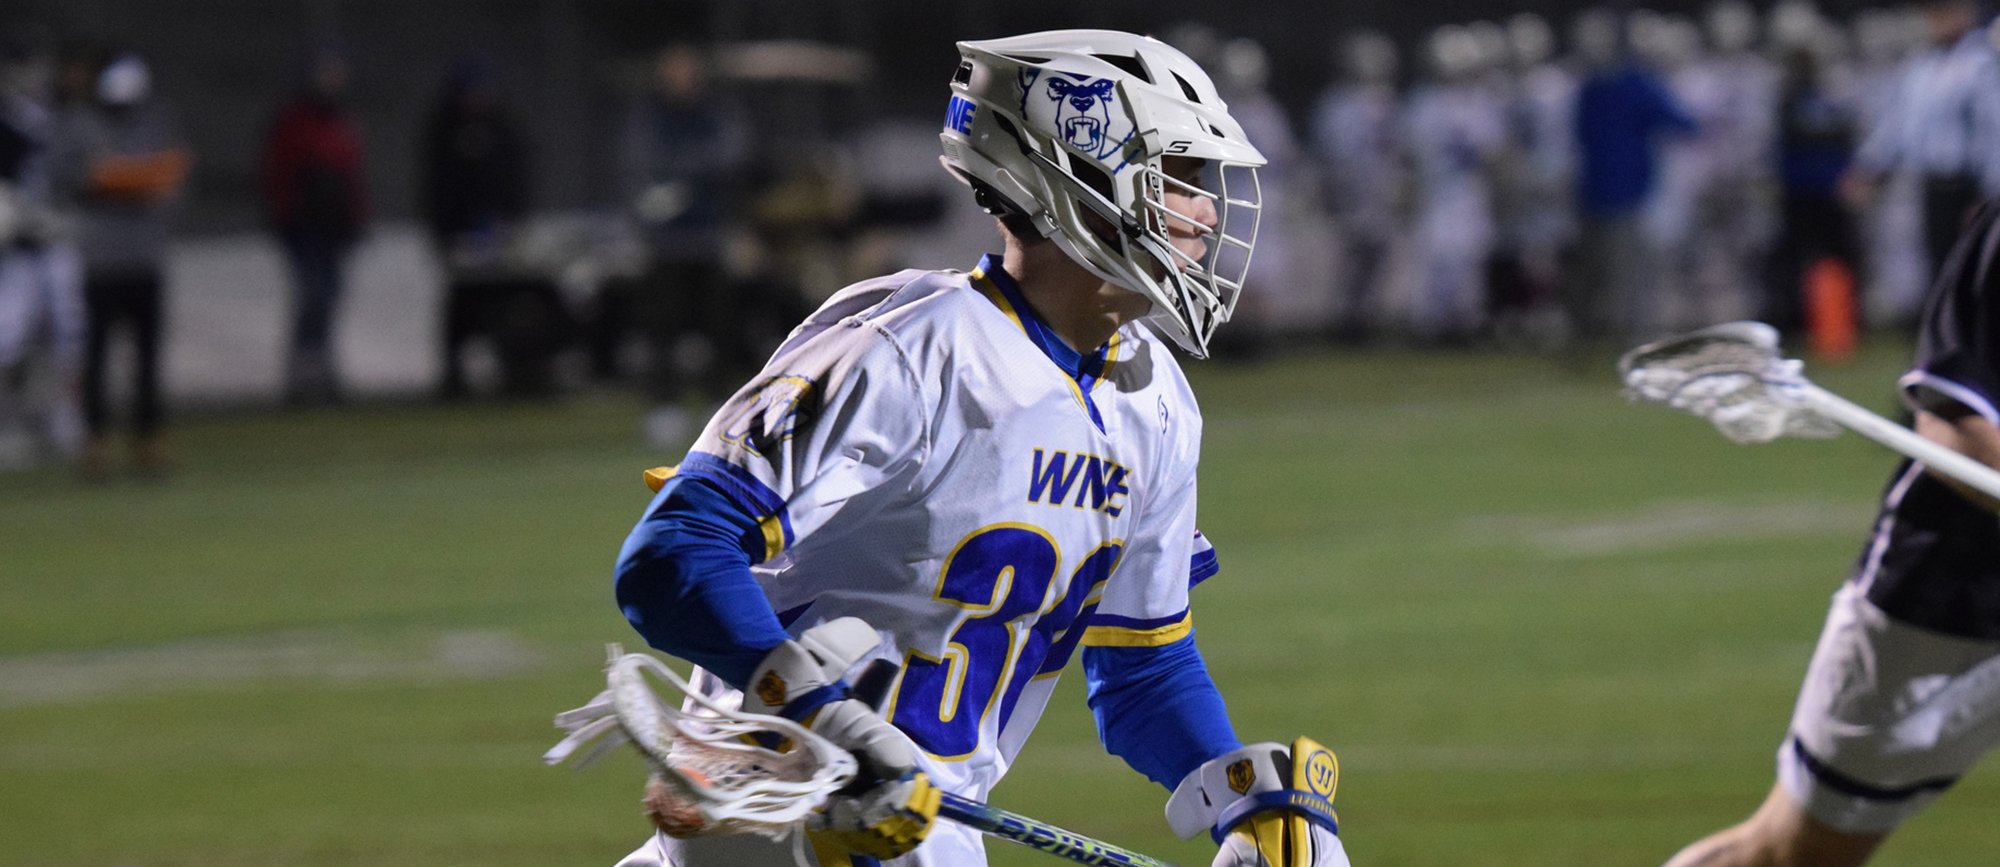 Junior John Shahpazian recorded three goals and one assist in Western New England's 14-12 win over Nazareth in Tampa, Florida on Friday night. (Photo by Rachael Margossian)